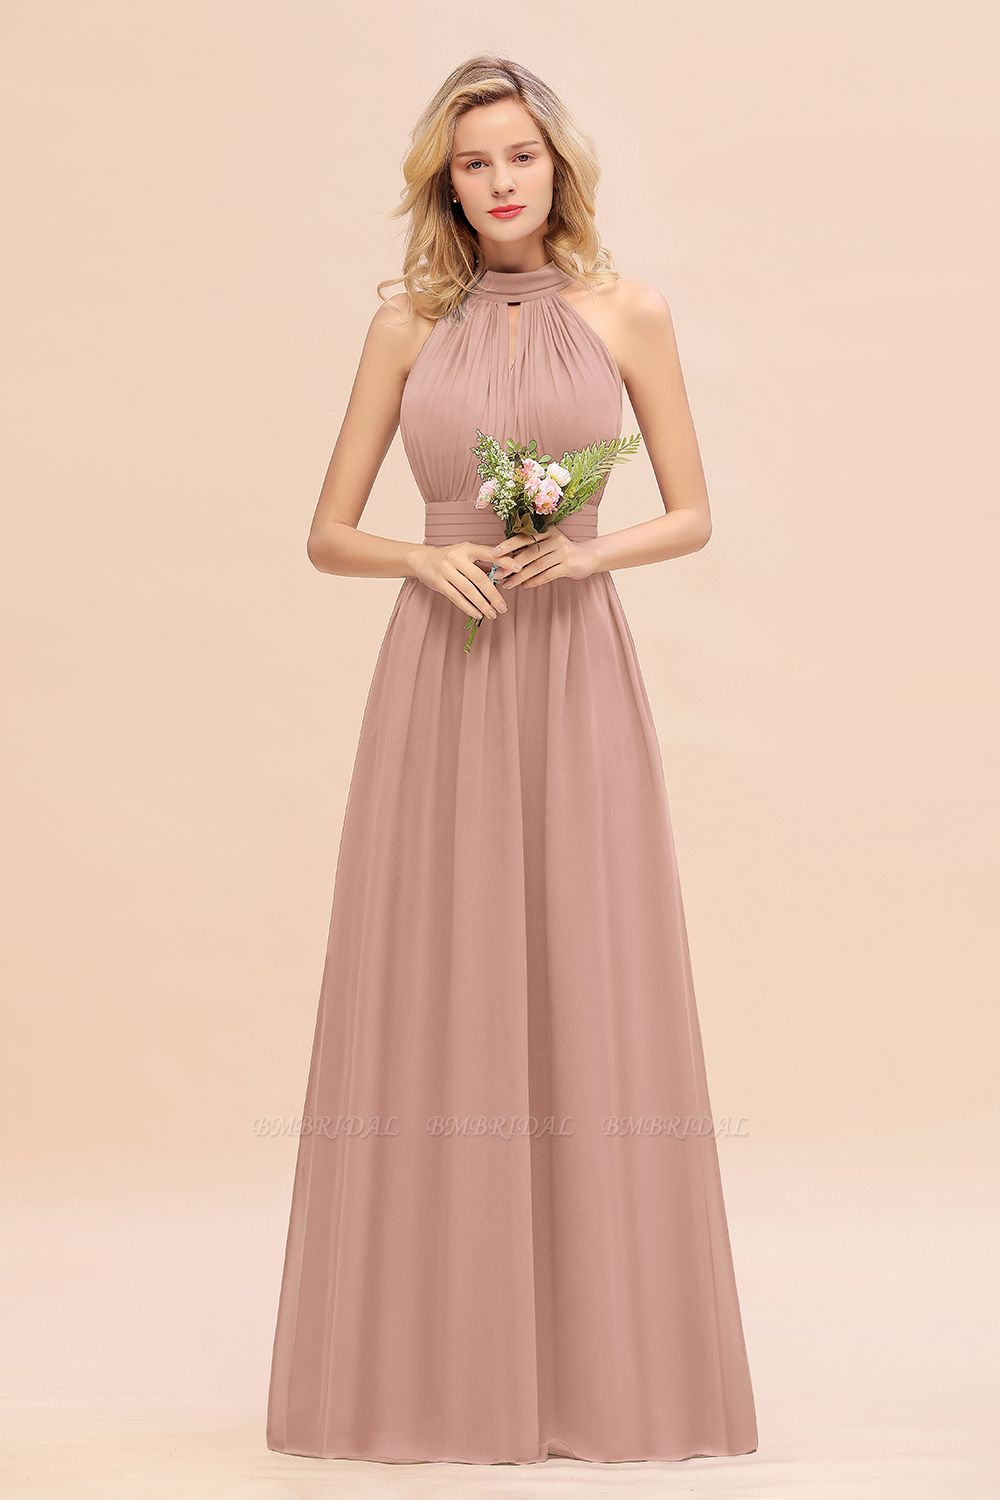 BMbridal Glamorous High-Neck Halter Bridesmaid Affordable Dresses with Ruffle